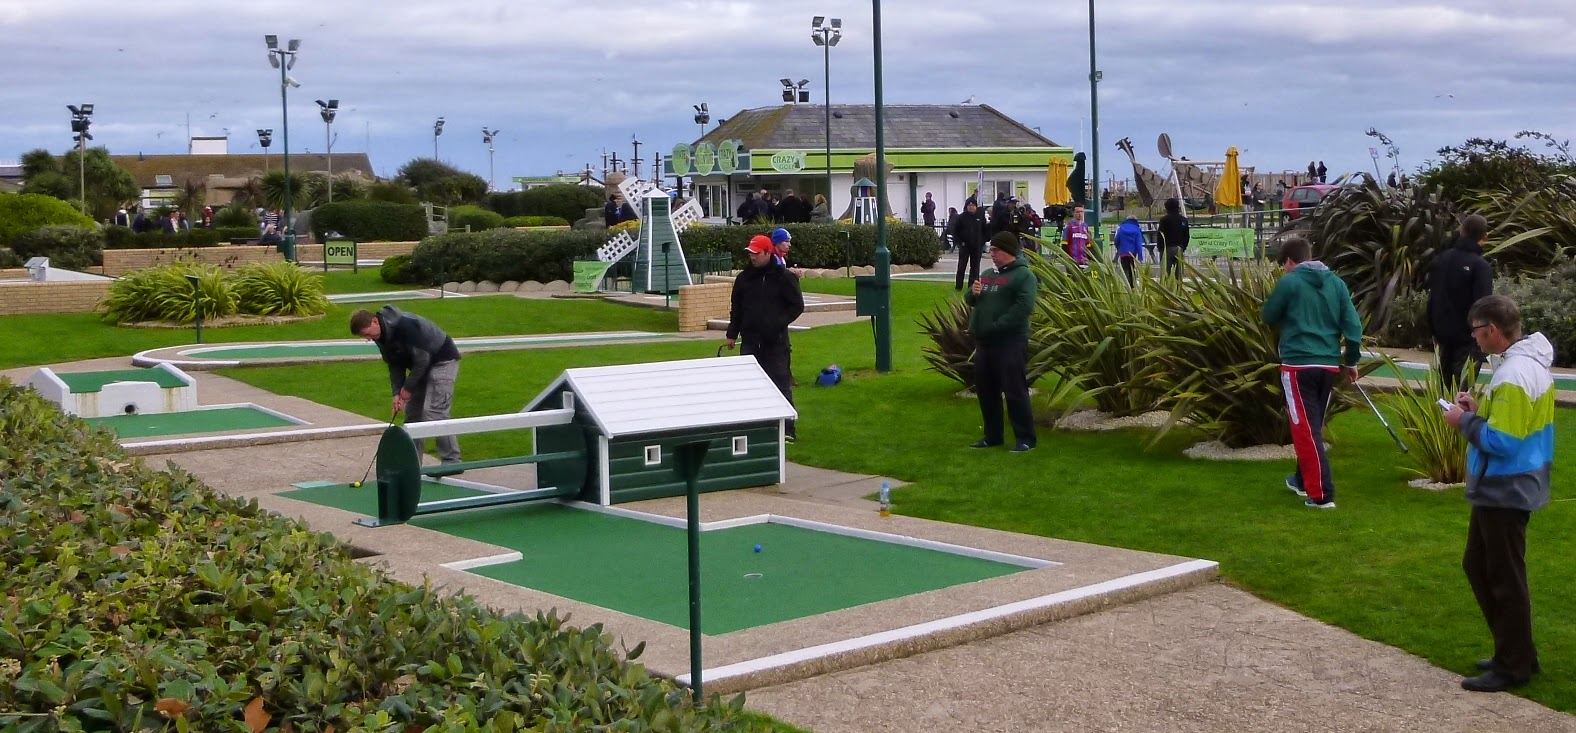 2014 World Crazy Golf Champion Chris 'Who' Harding on his way to victory in the final round of the tournament played at Hastings Sea Front. Opponents Nuno Cunha (POR) and Adam Kelly (ENG) look on, as do referee John McIver and scorekeeper Adrian Amey